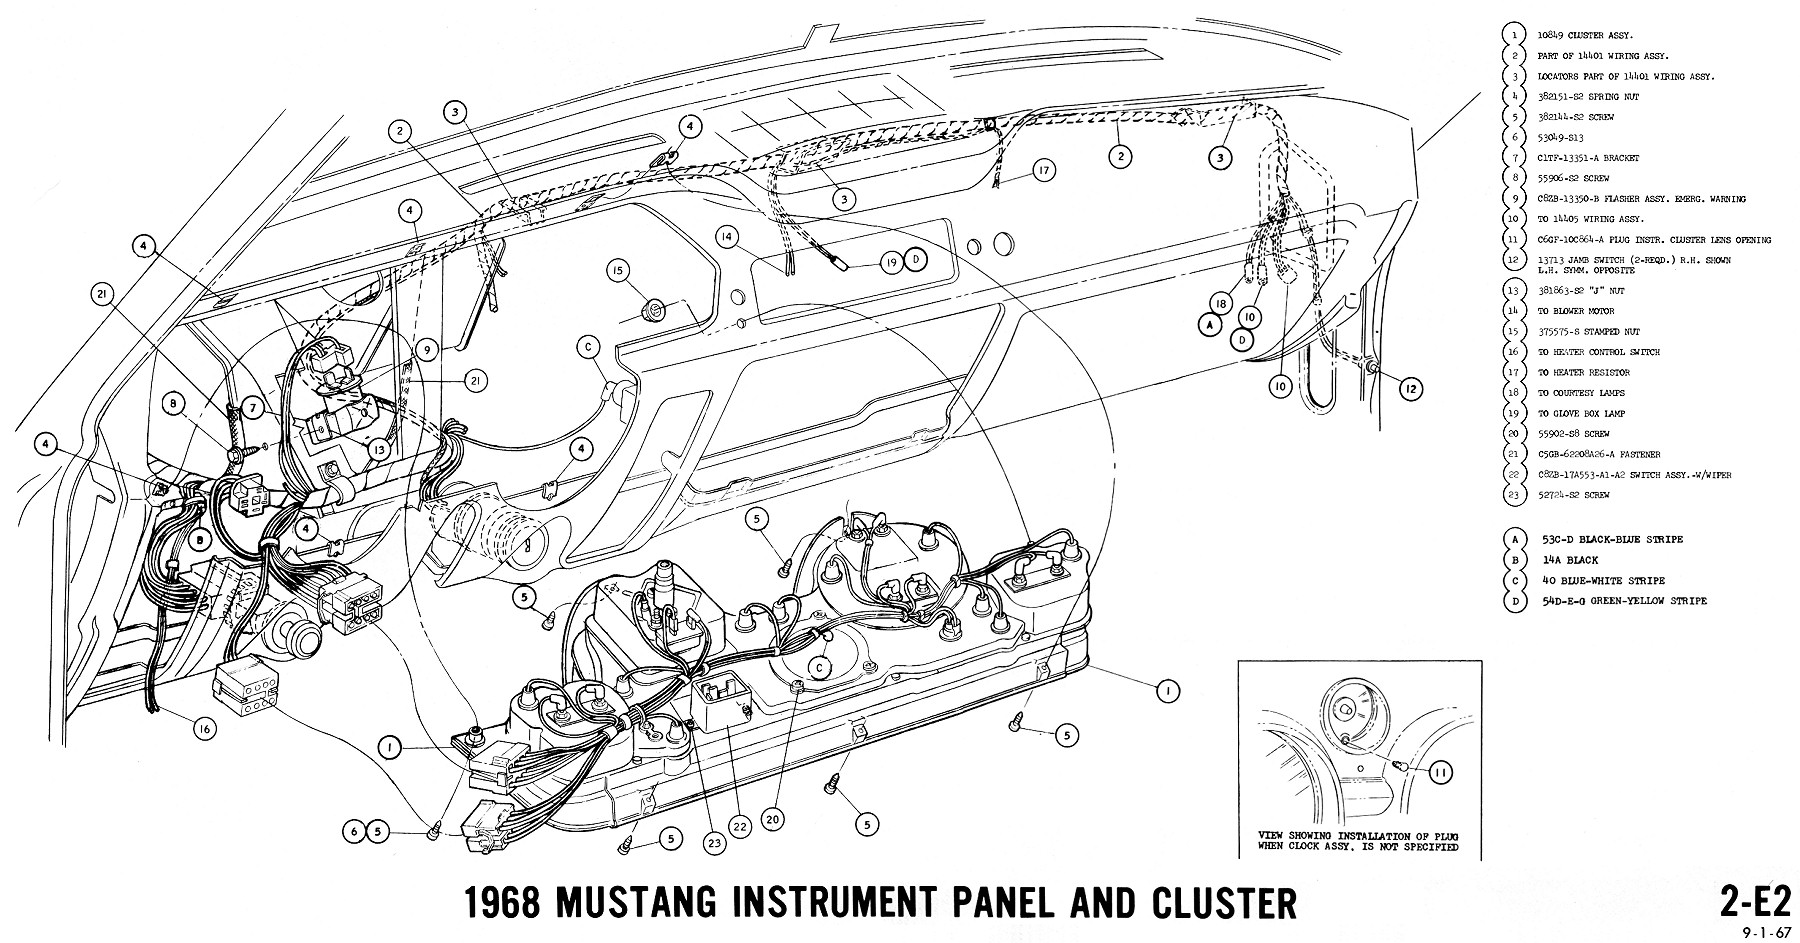 1968 mustang wiring diagram instruments 2 1968 mustang wiring diagrams and vacuum schematics average joe 1966 mustang wiring diagrams at n-0.co